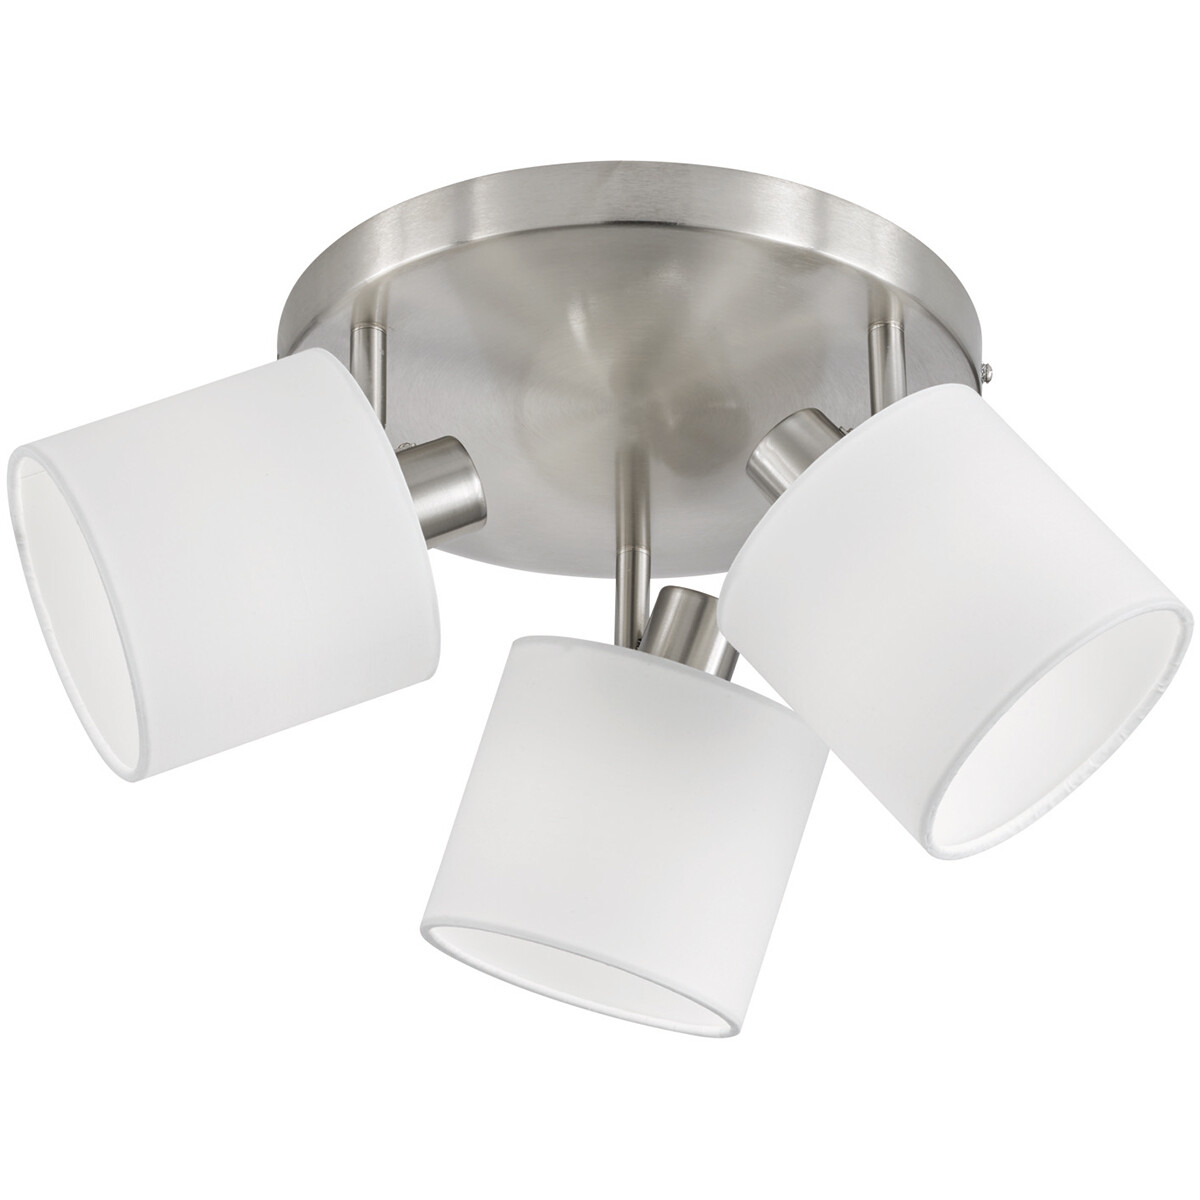 LED Plafondspot - Trion Torry - E14 Fitting - 3-lichts - Rond - Mat Nikkel - Aluminium